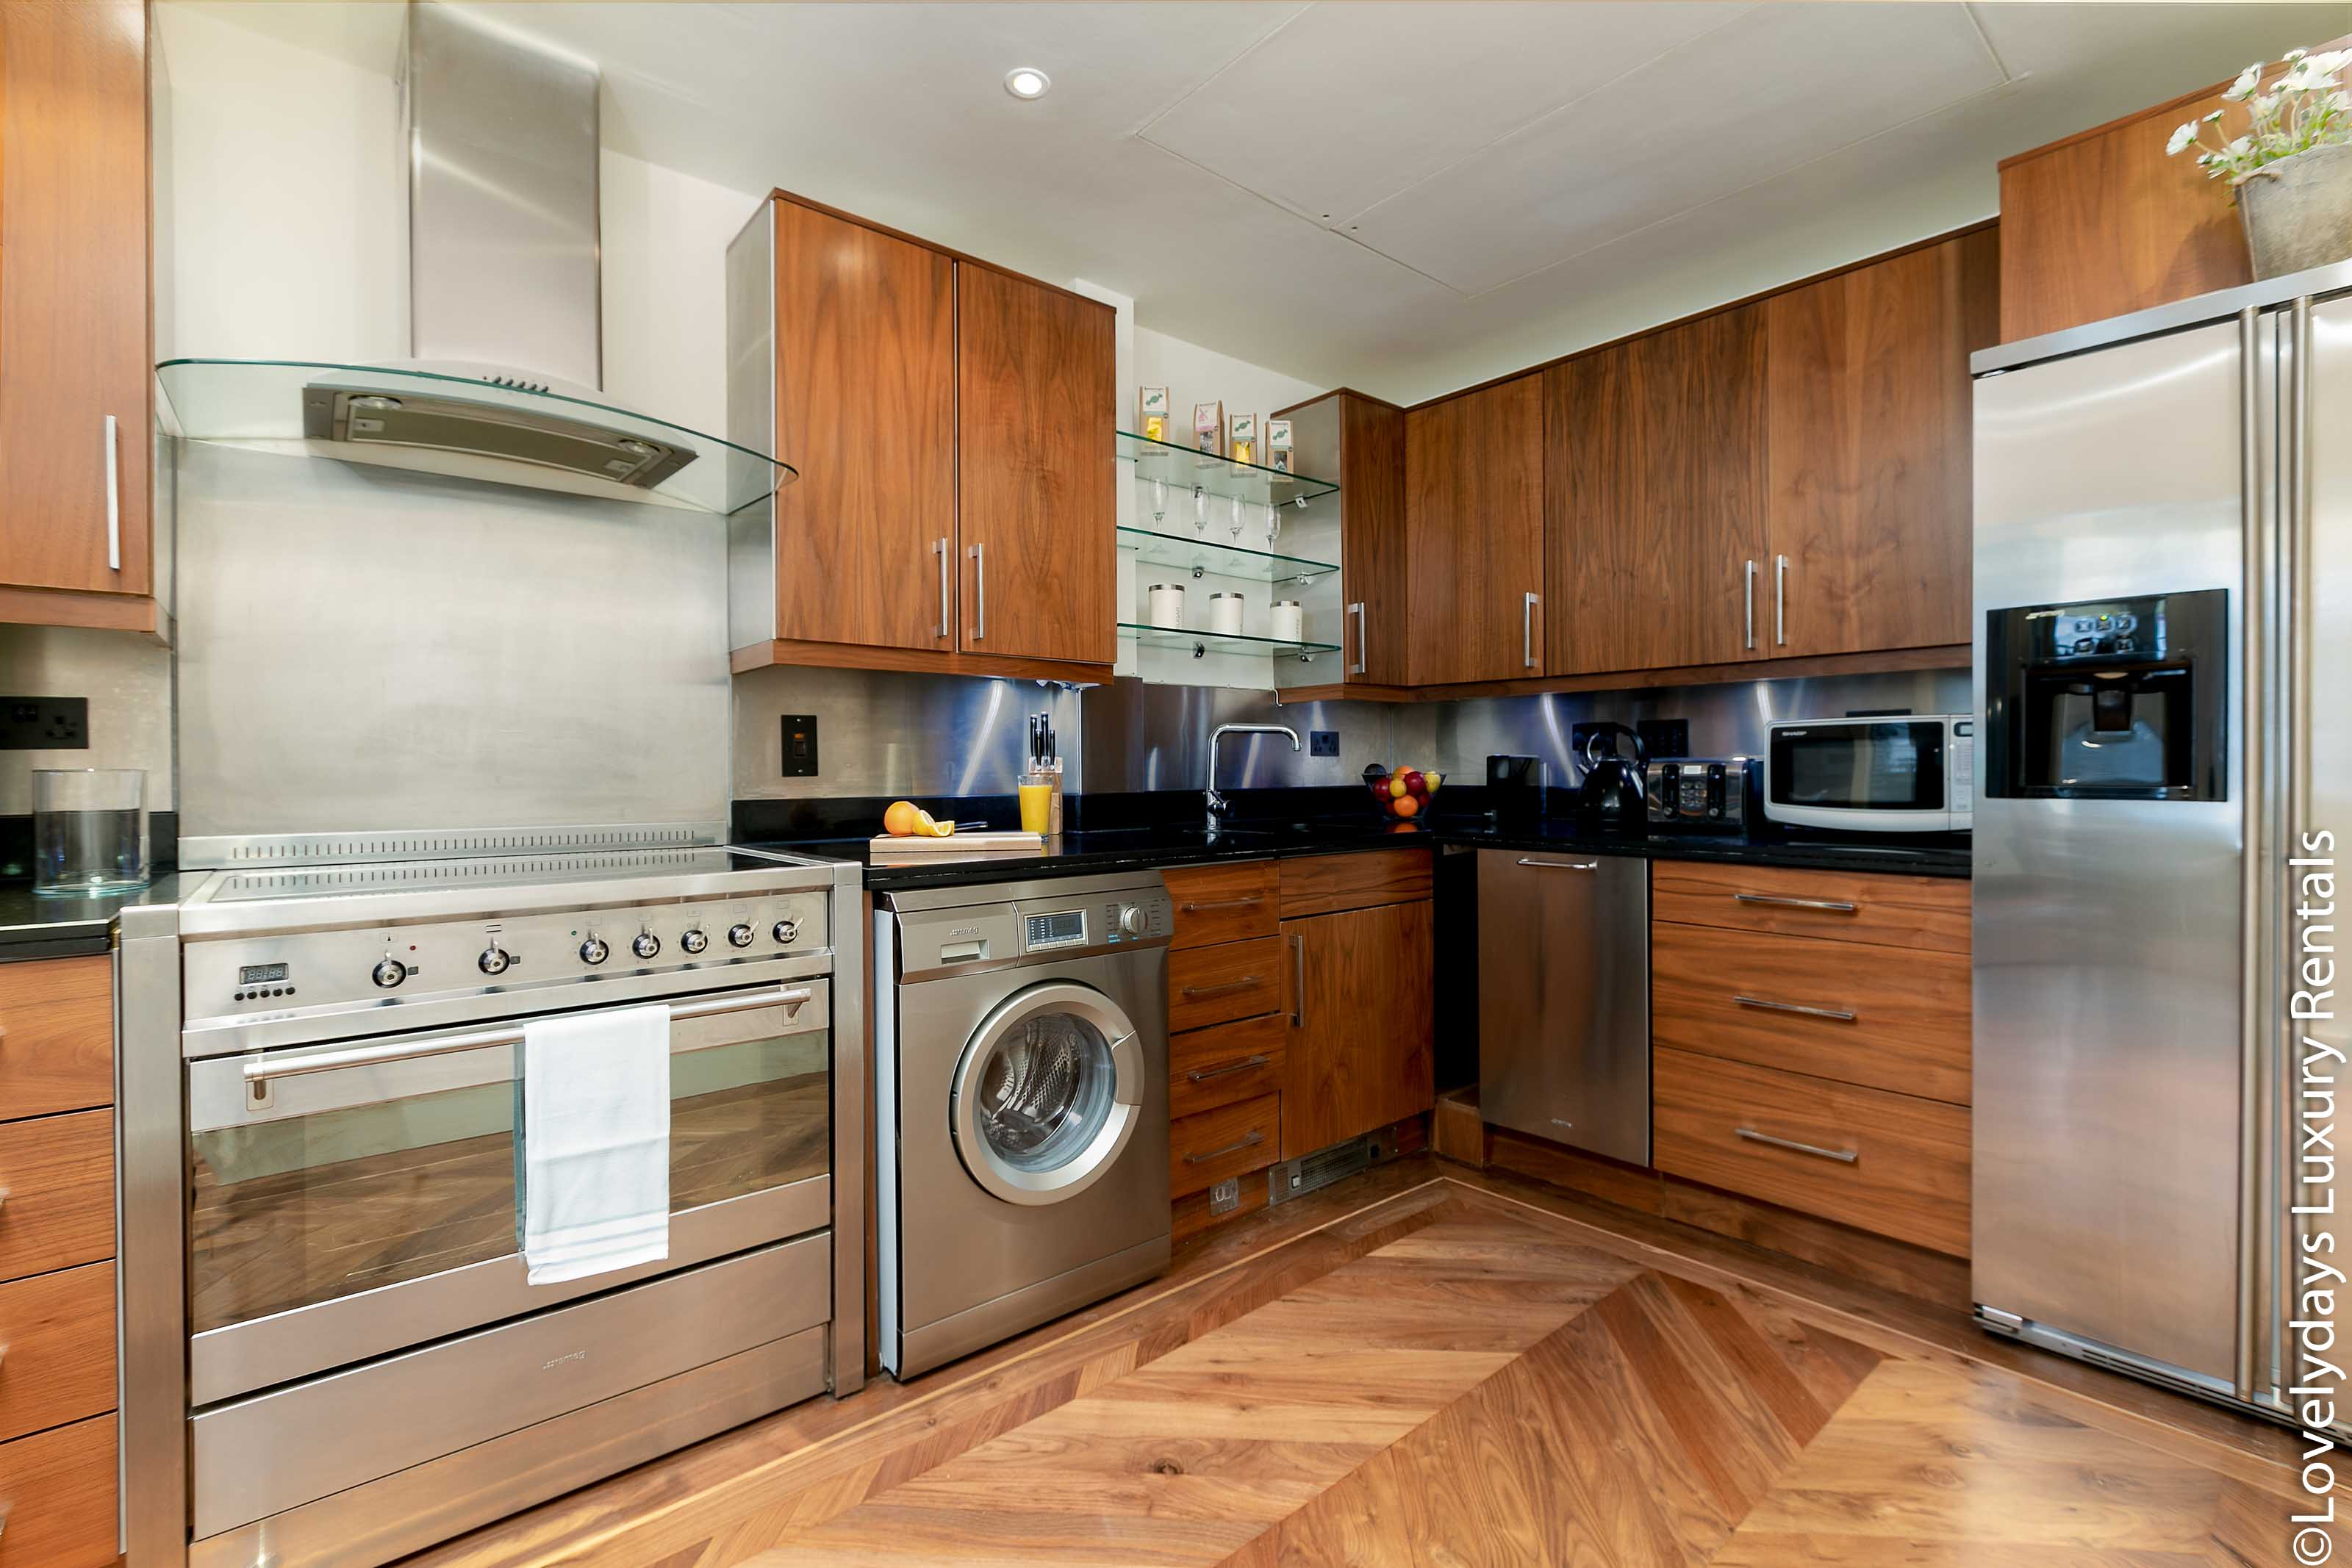 Lovelydays luxury service apartment rental - London - Knightsbridge - Hans Crescent - Partner - 2 bedrooms - 2 bathrooms - Luxury kitchen - 885a1fce5208 - Lovelydays